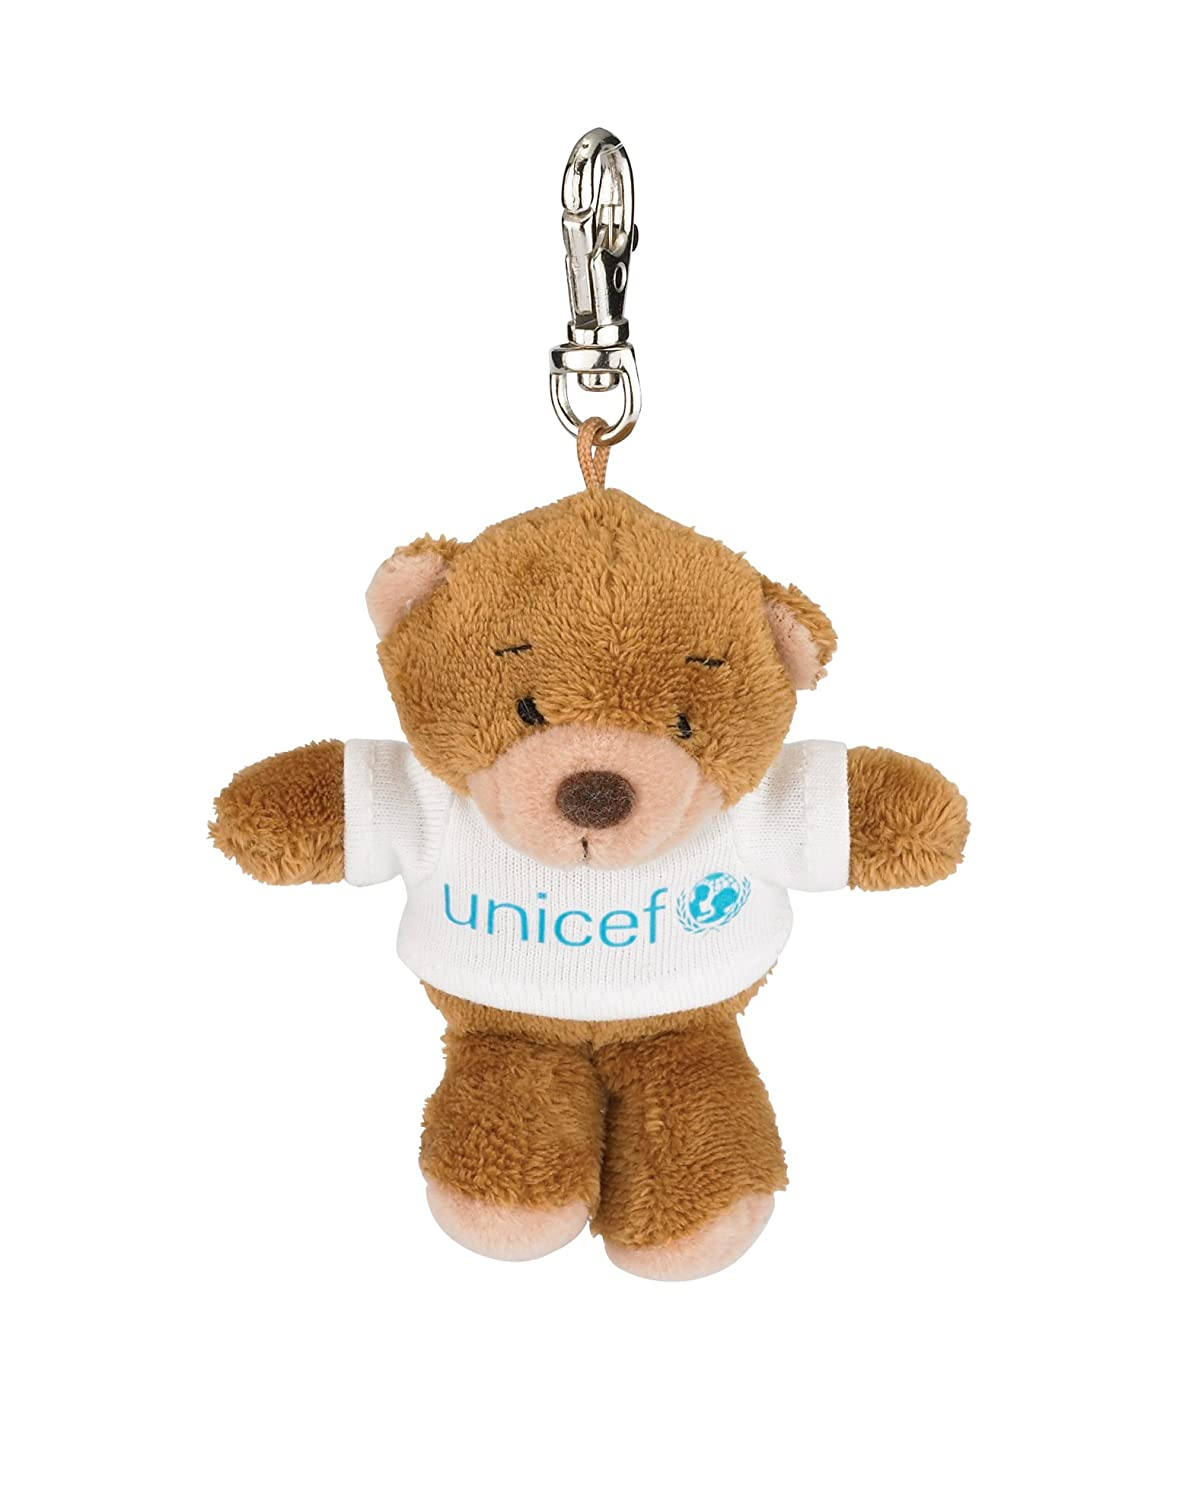 UNICEF Petit Bear Key Chain Set of 3 (japan import): Amazon.es: Juguetes y juegos